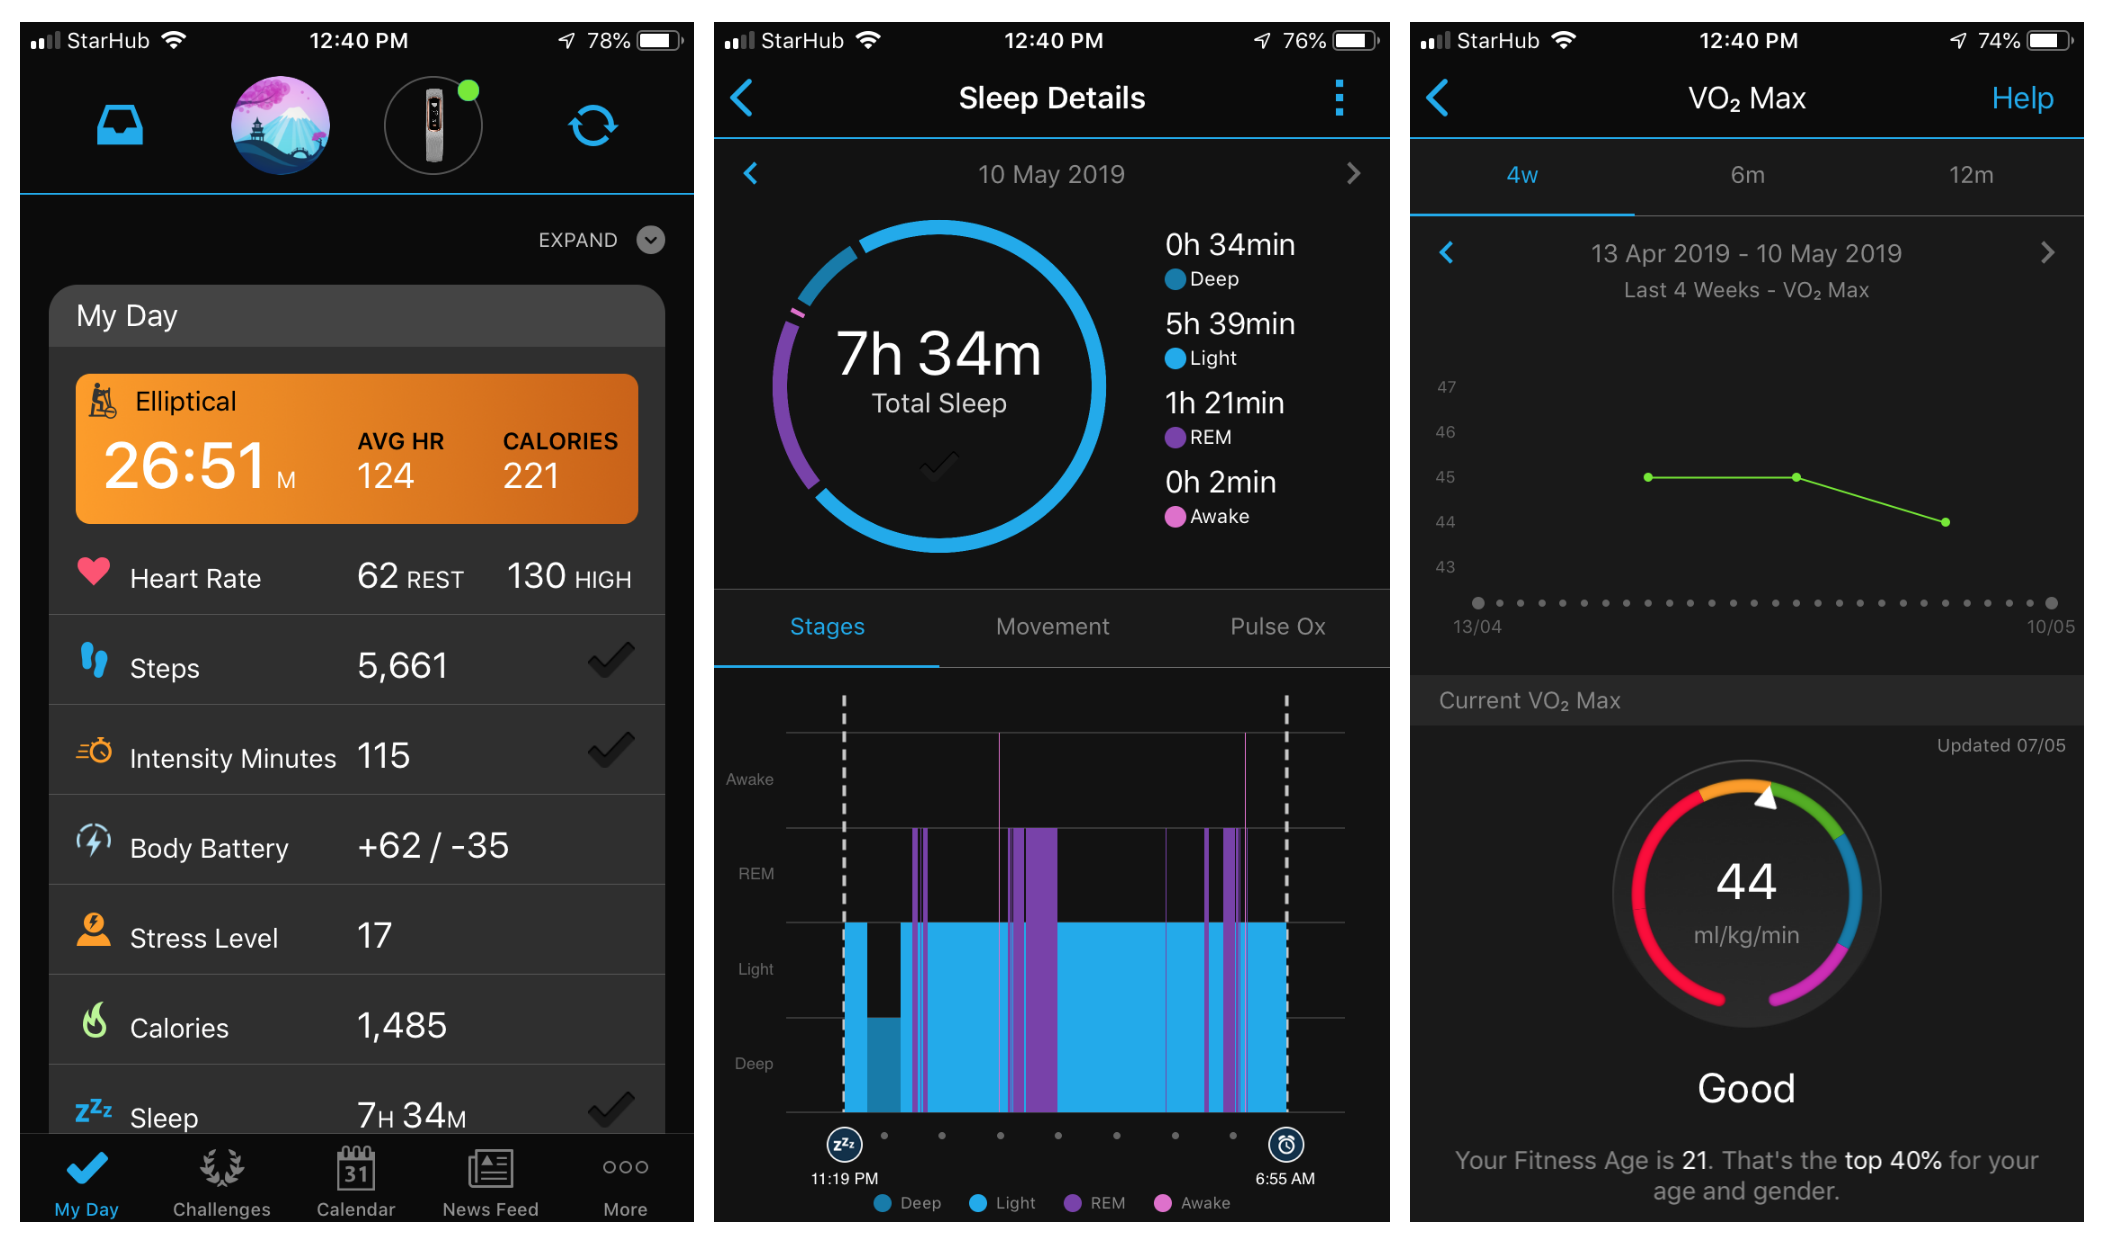 Garmin certainly packs a lot of data and functionality incl. VO2Max and even SpO2 measurements. The app mimics Fitbit's category-leading offering but falls short on UX.